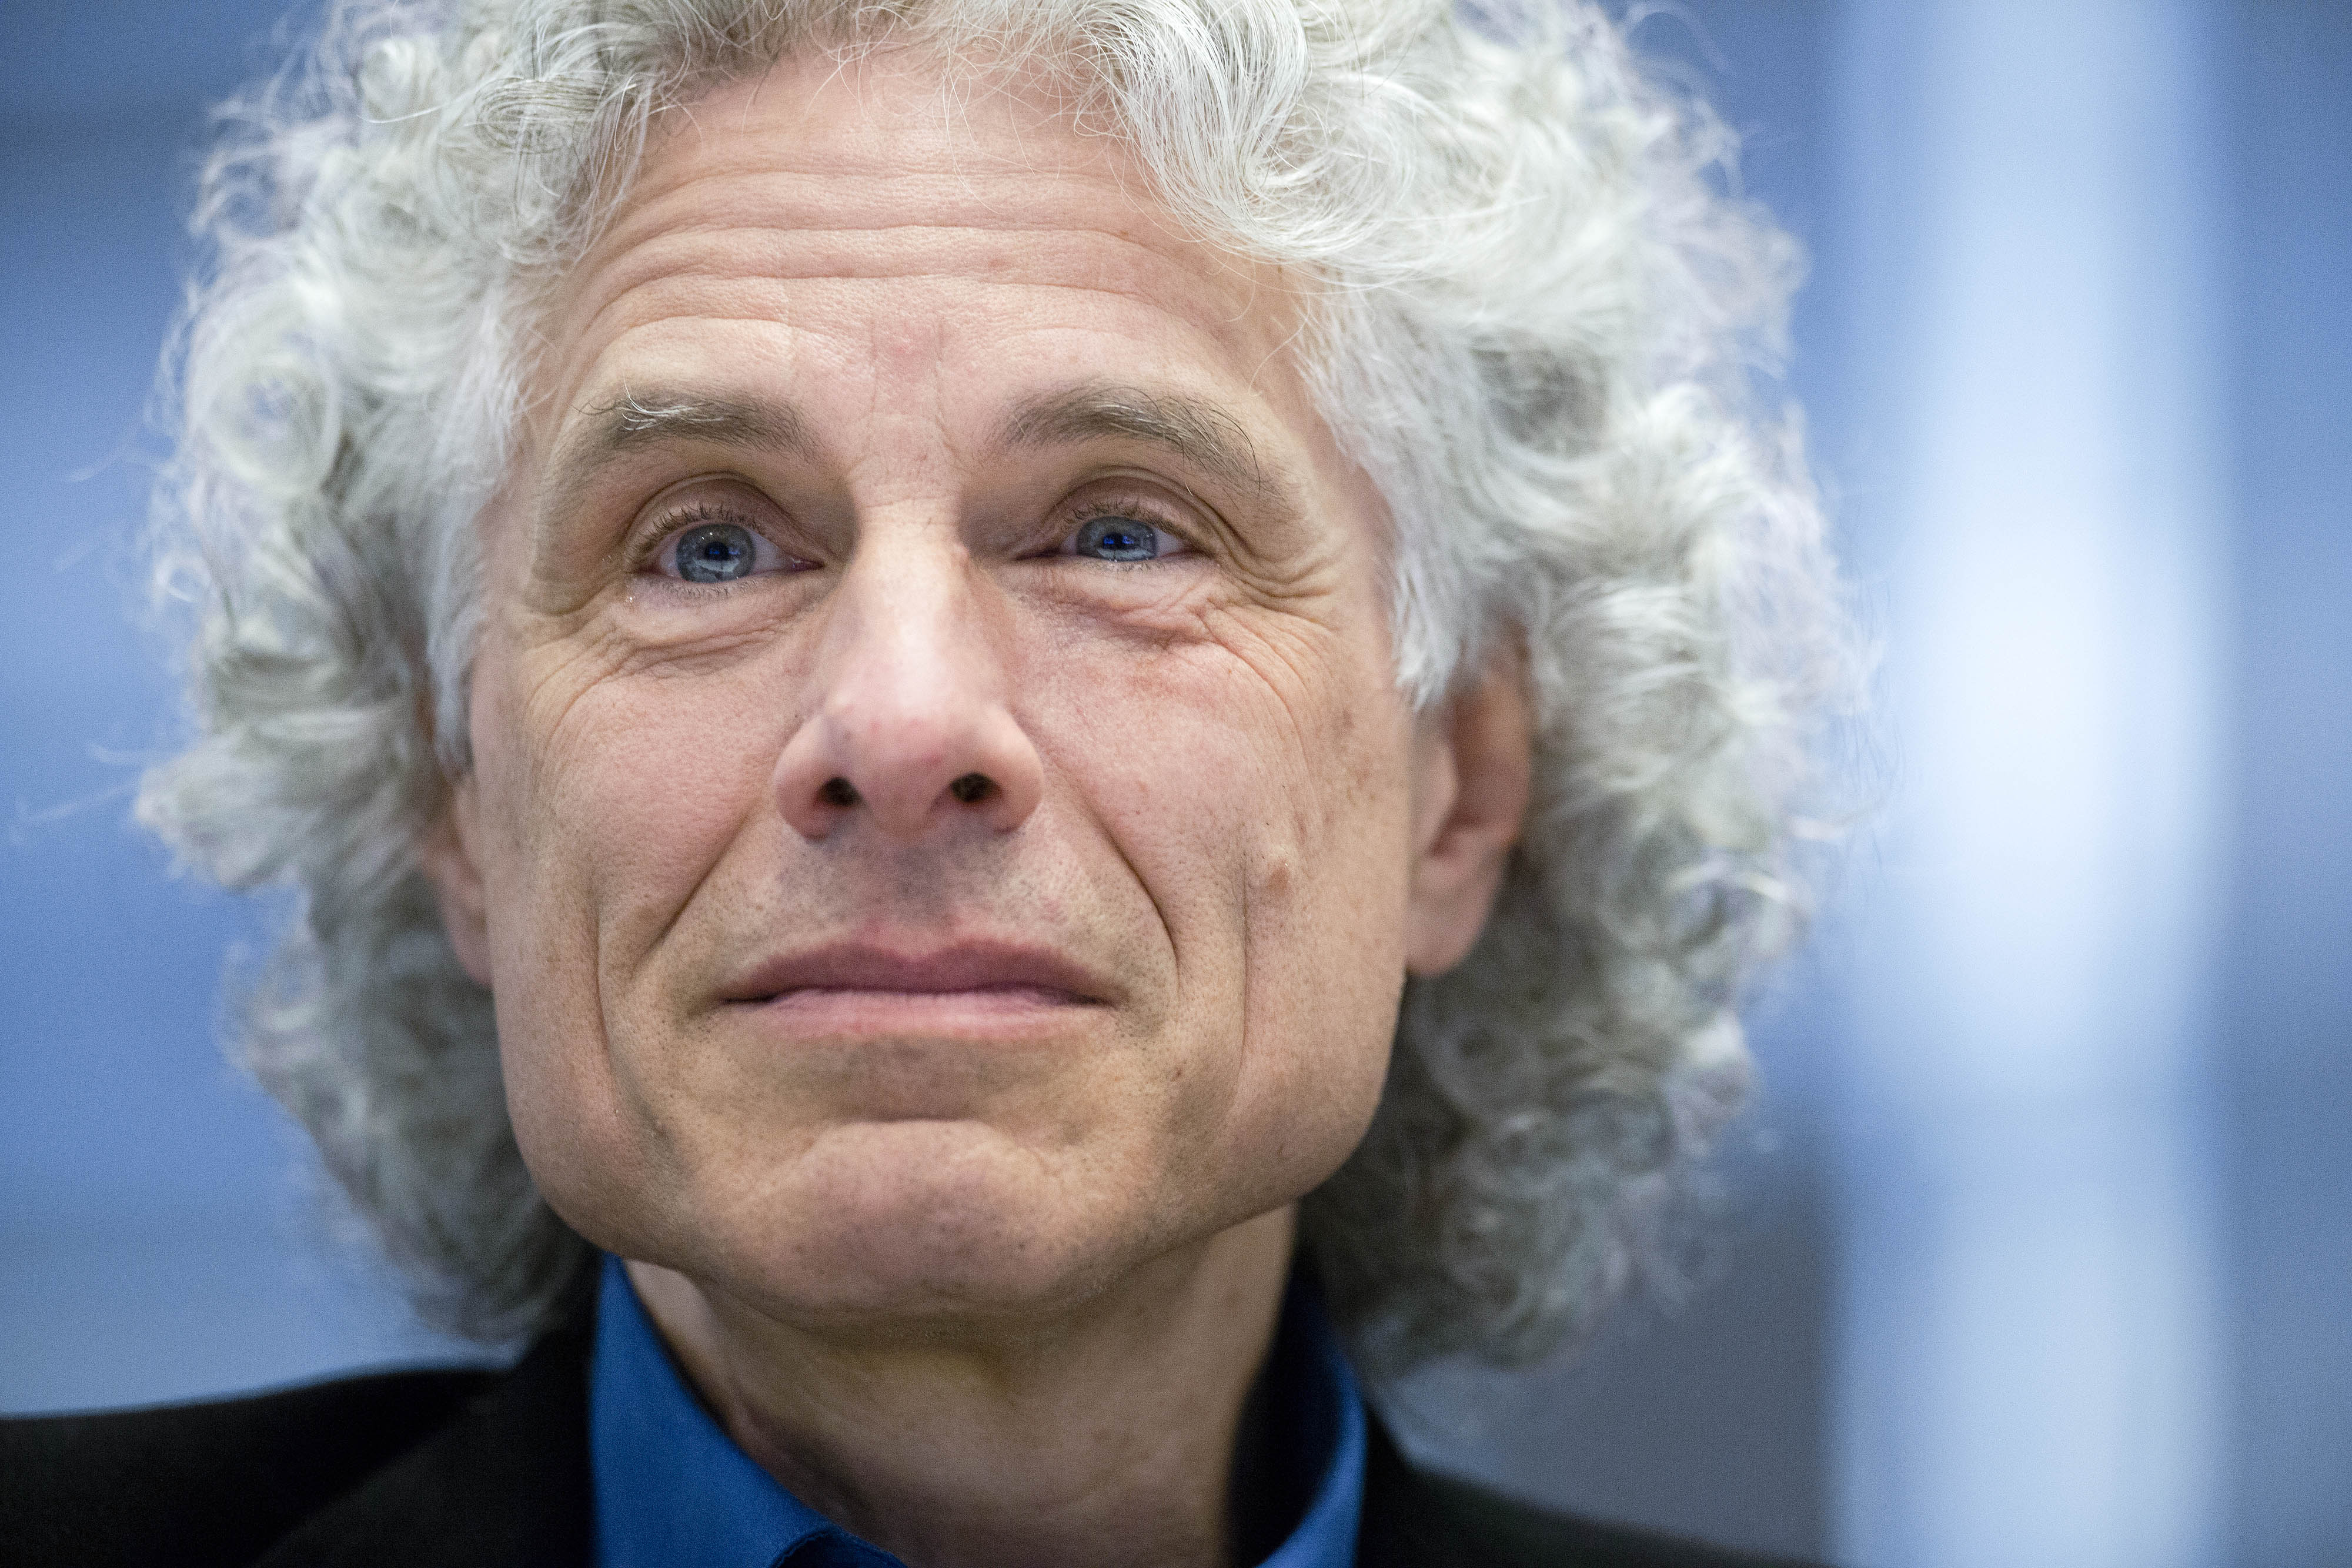 Steven Pinker during an interview in New York City on May 22, 2015.